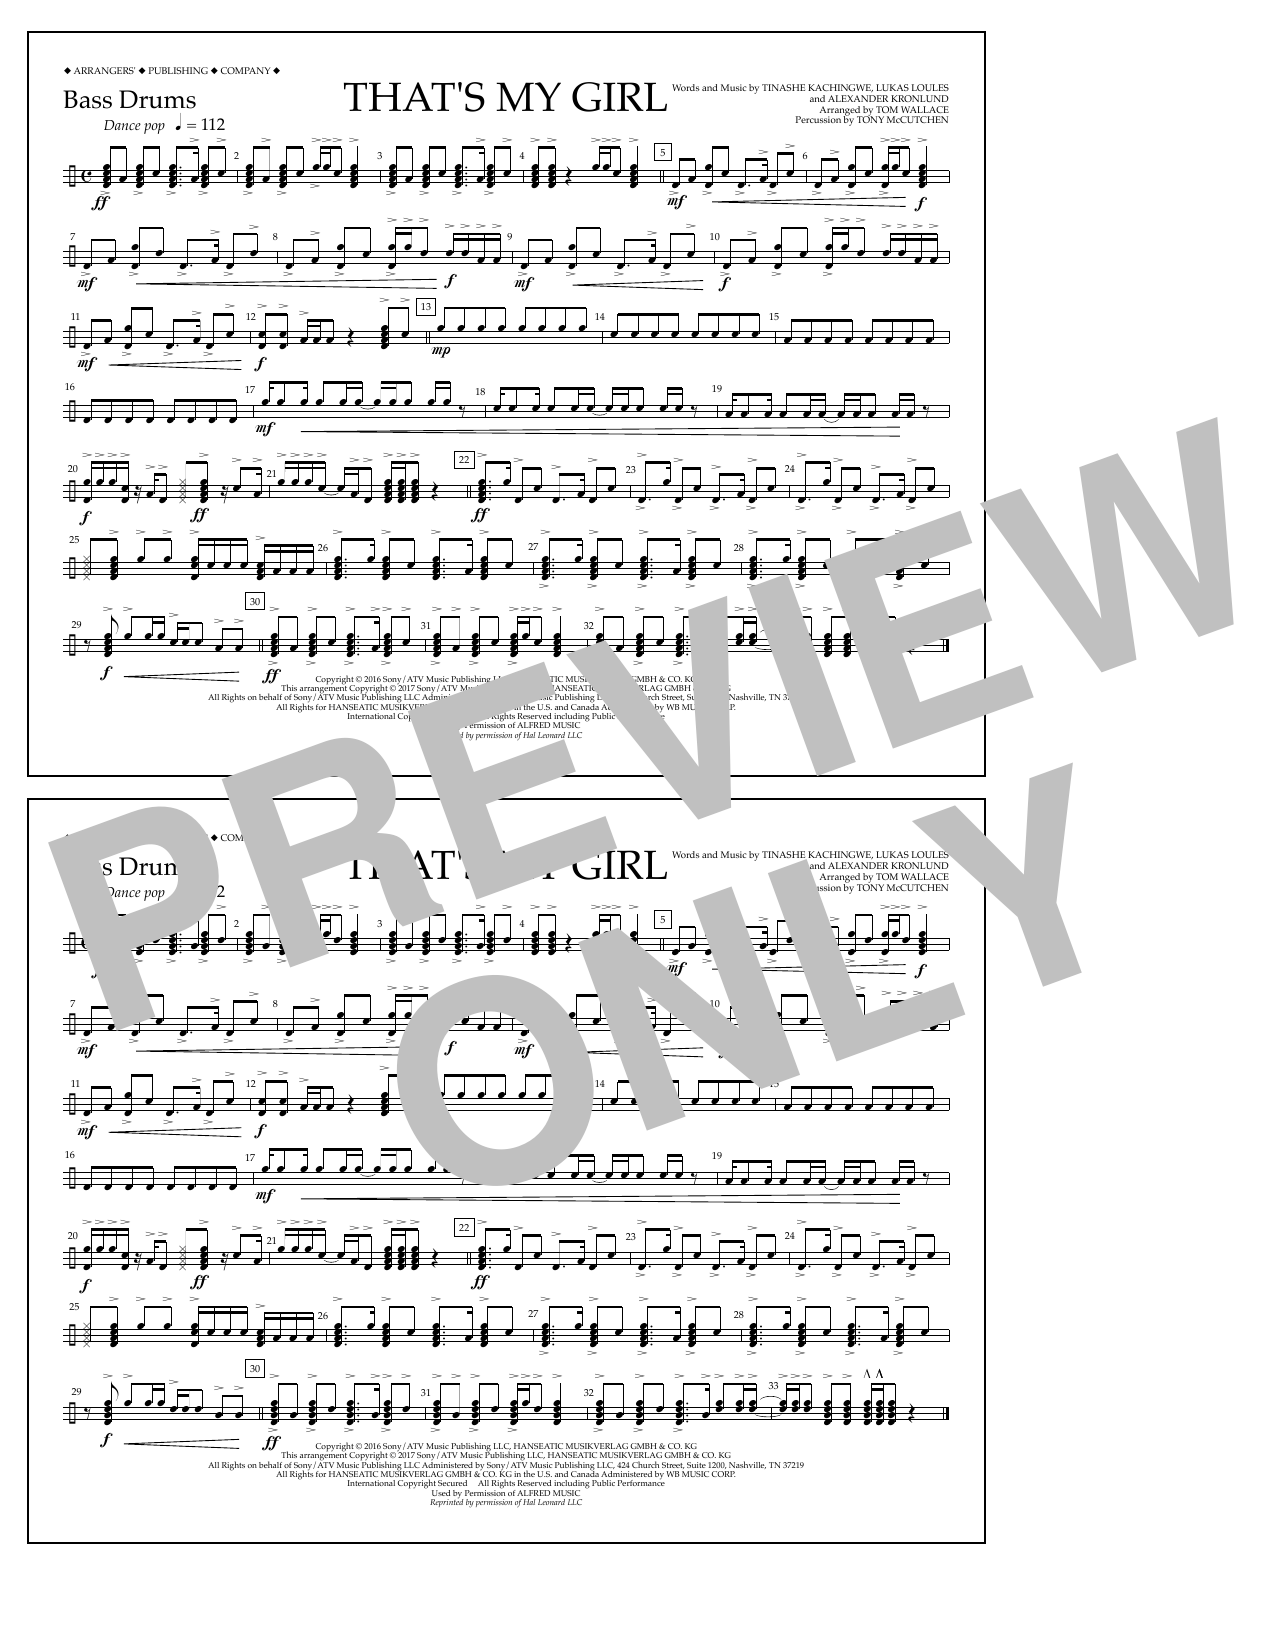 That's My Girl - Bass Drums Sheet Music